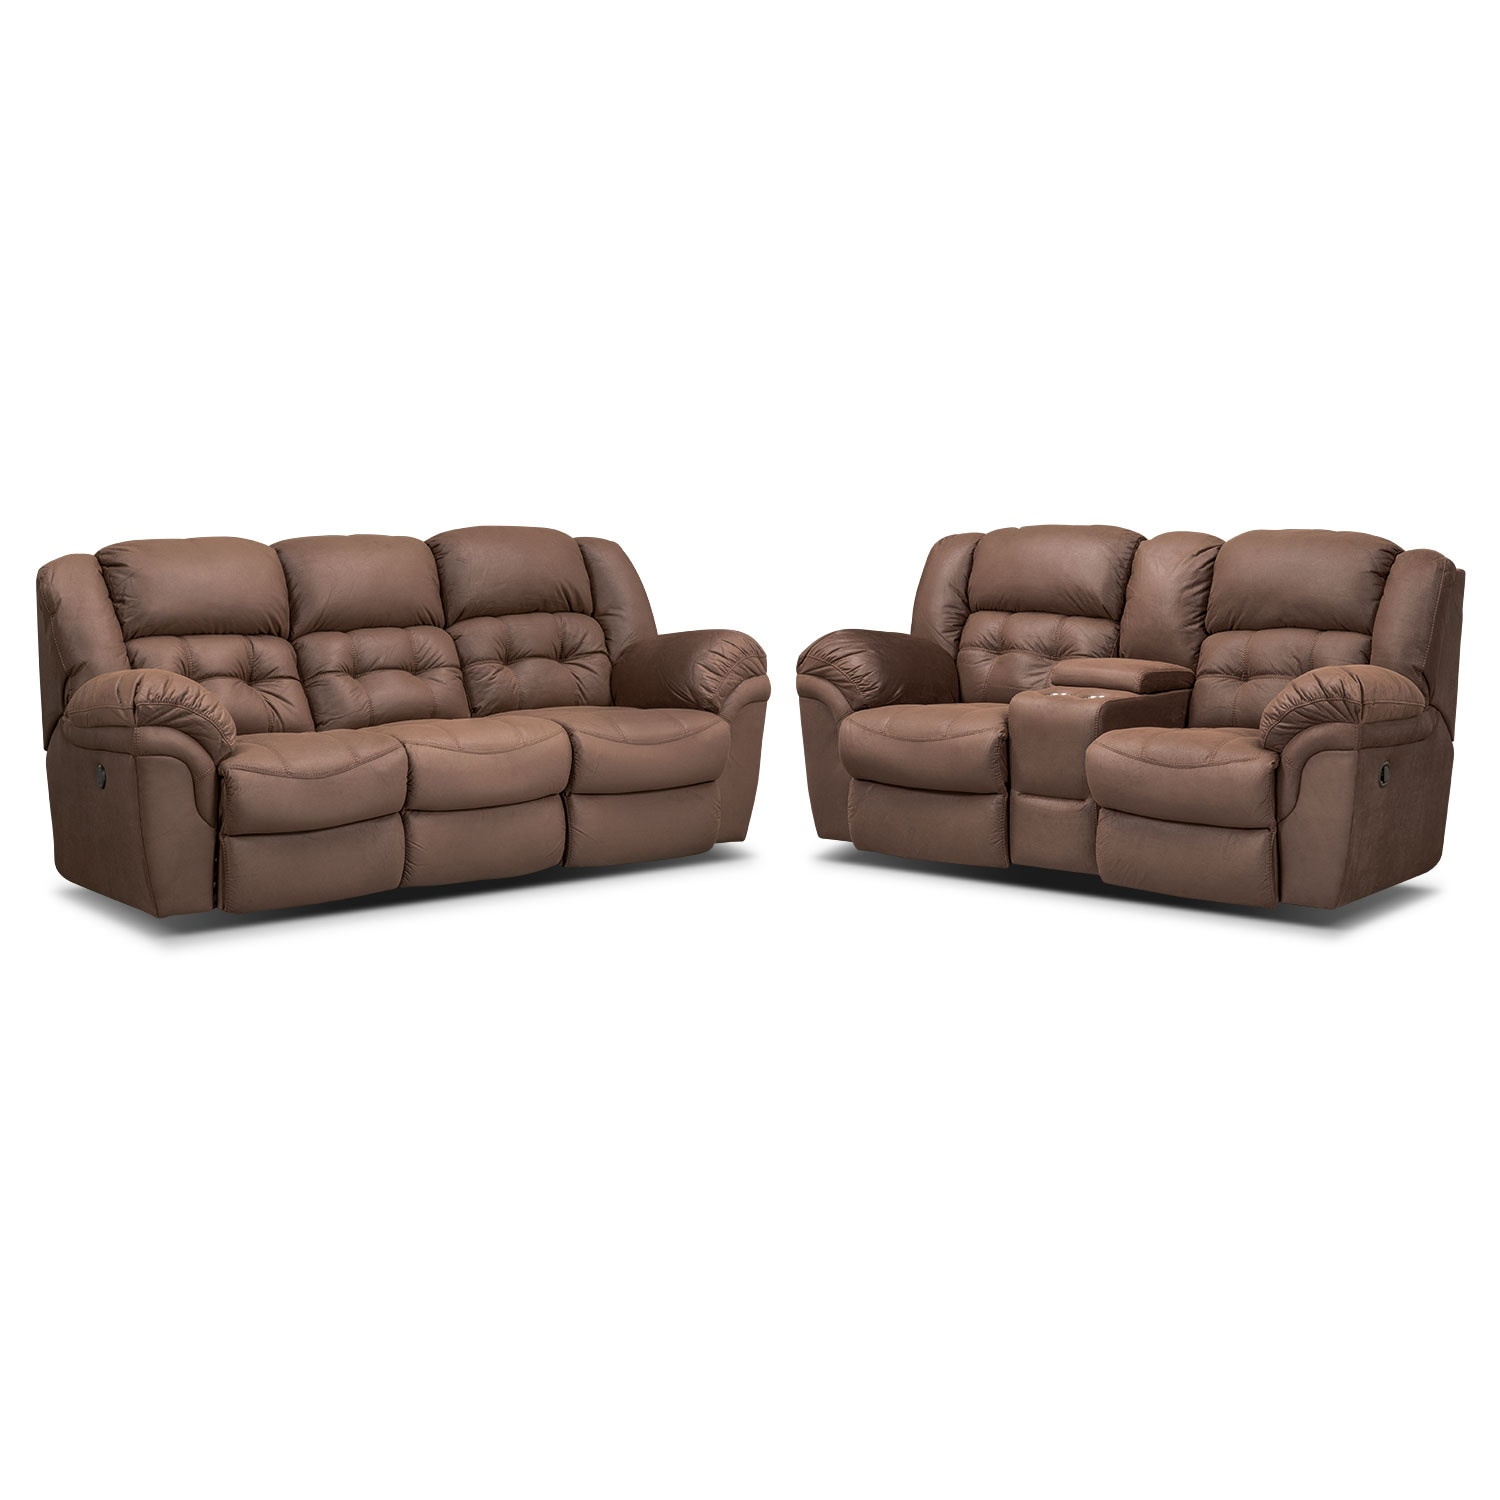 Living Room Furniture - Lancer Chocolate Power Reclining Sofa and Reclining Loveseat w/ Console Set